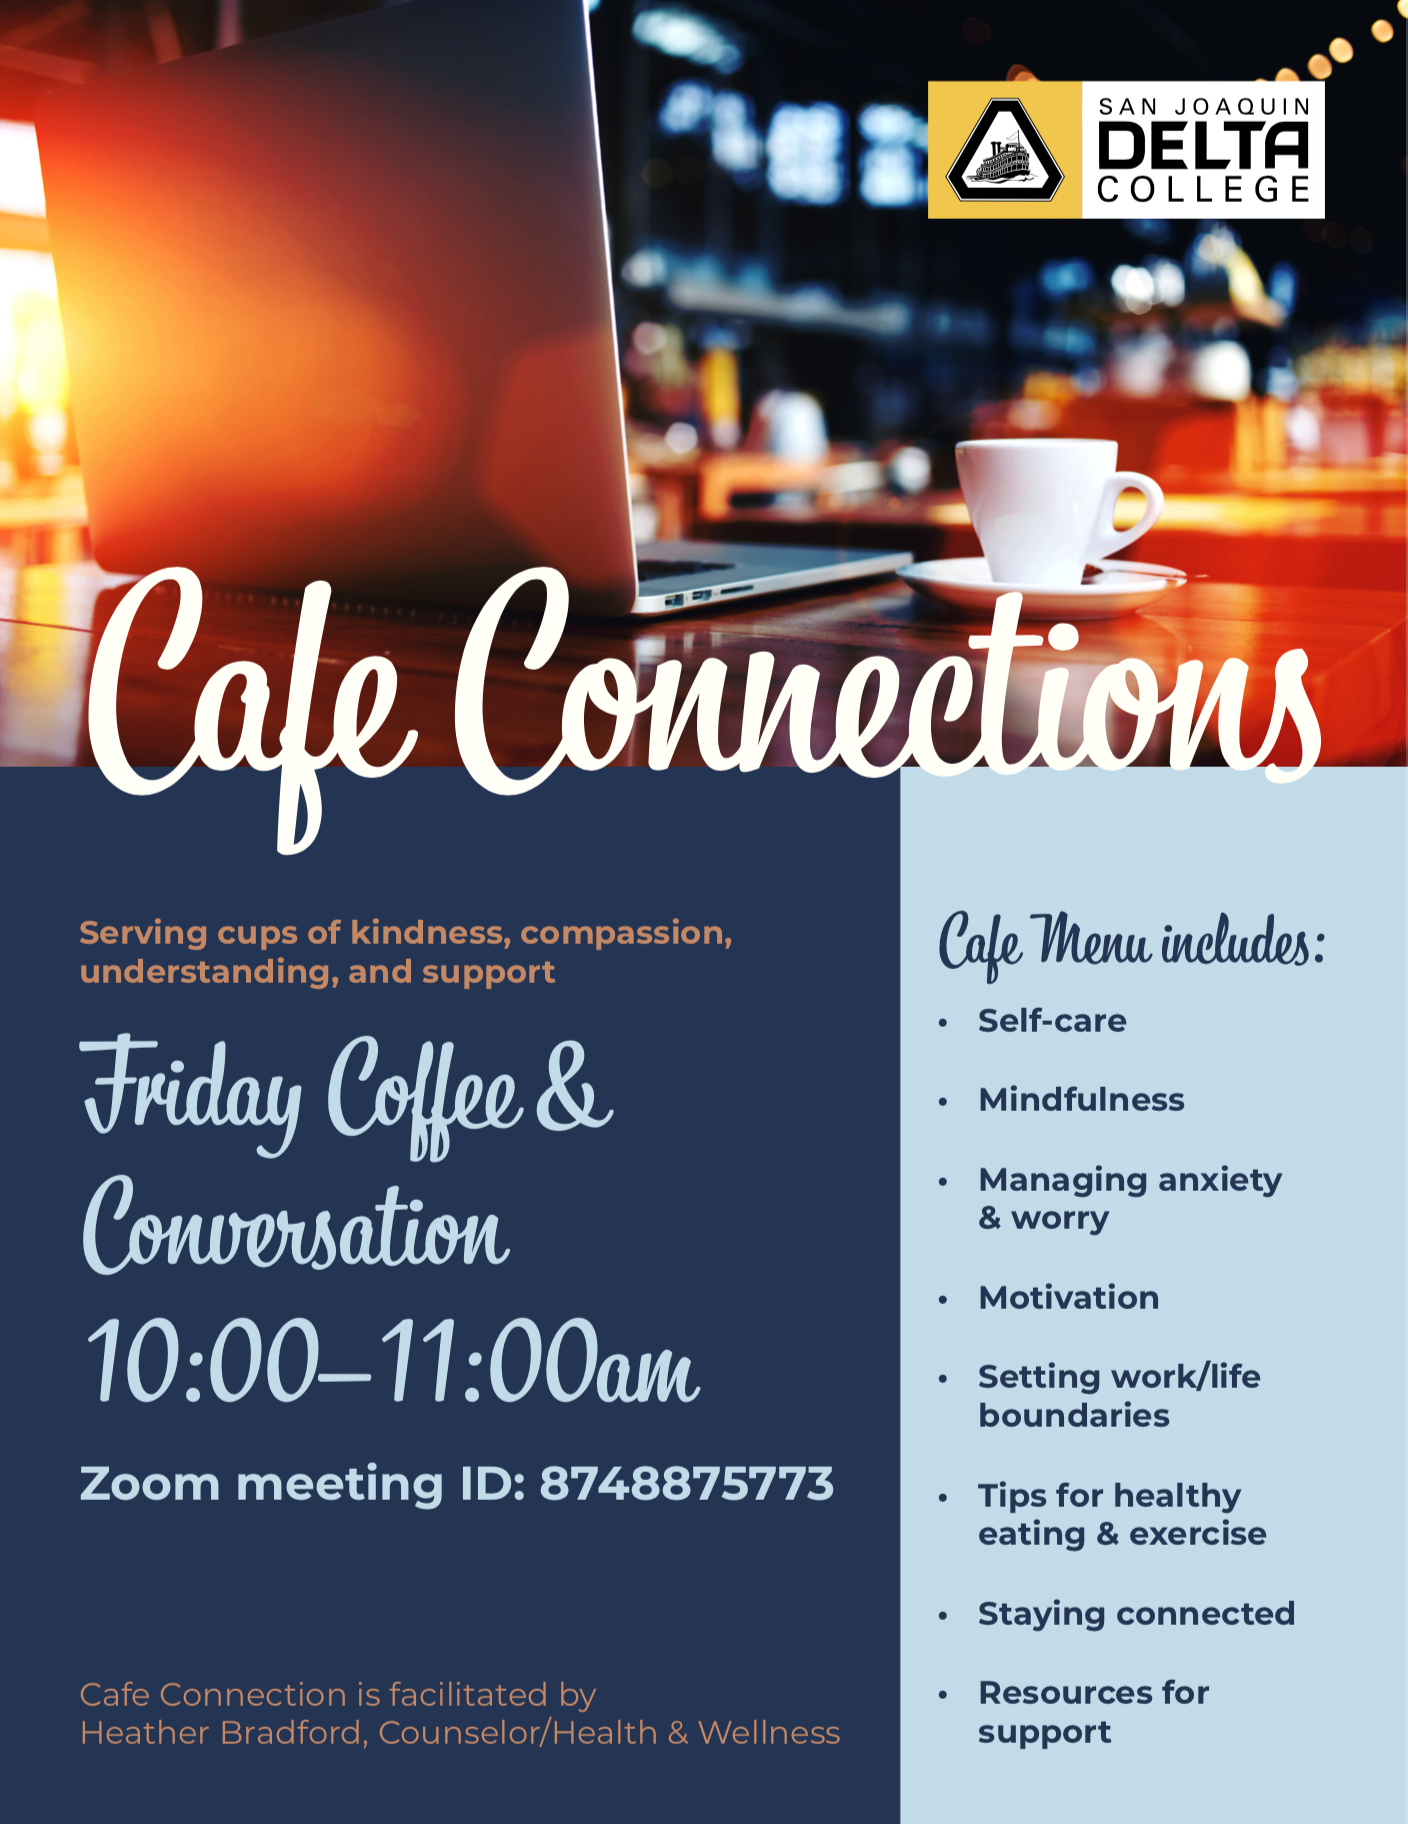 Cafe Connection